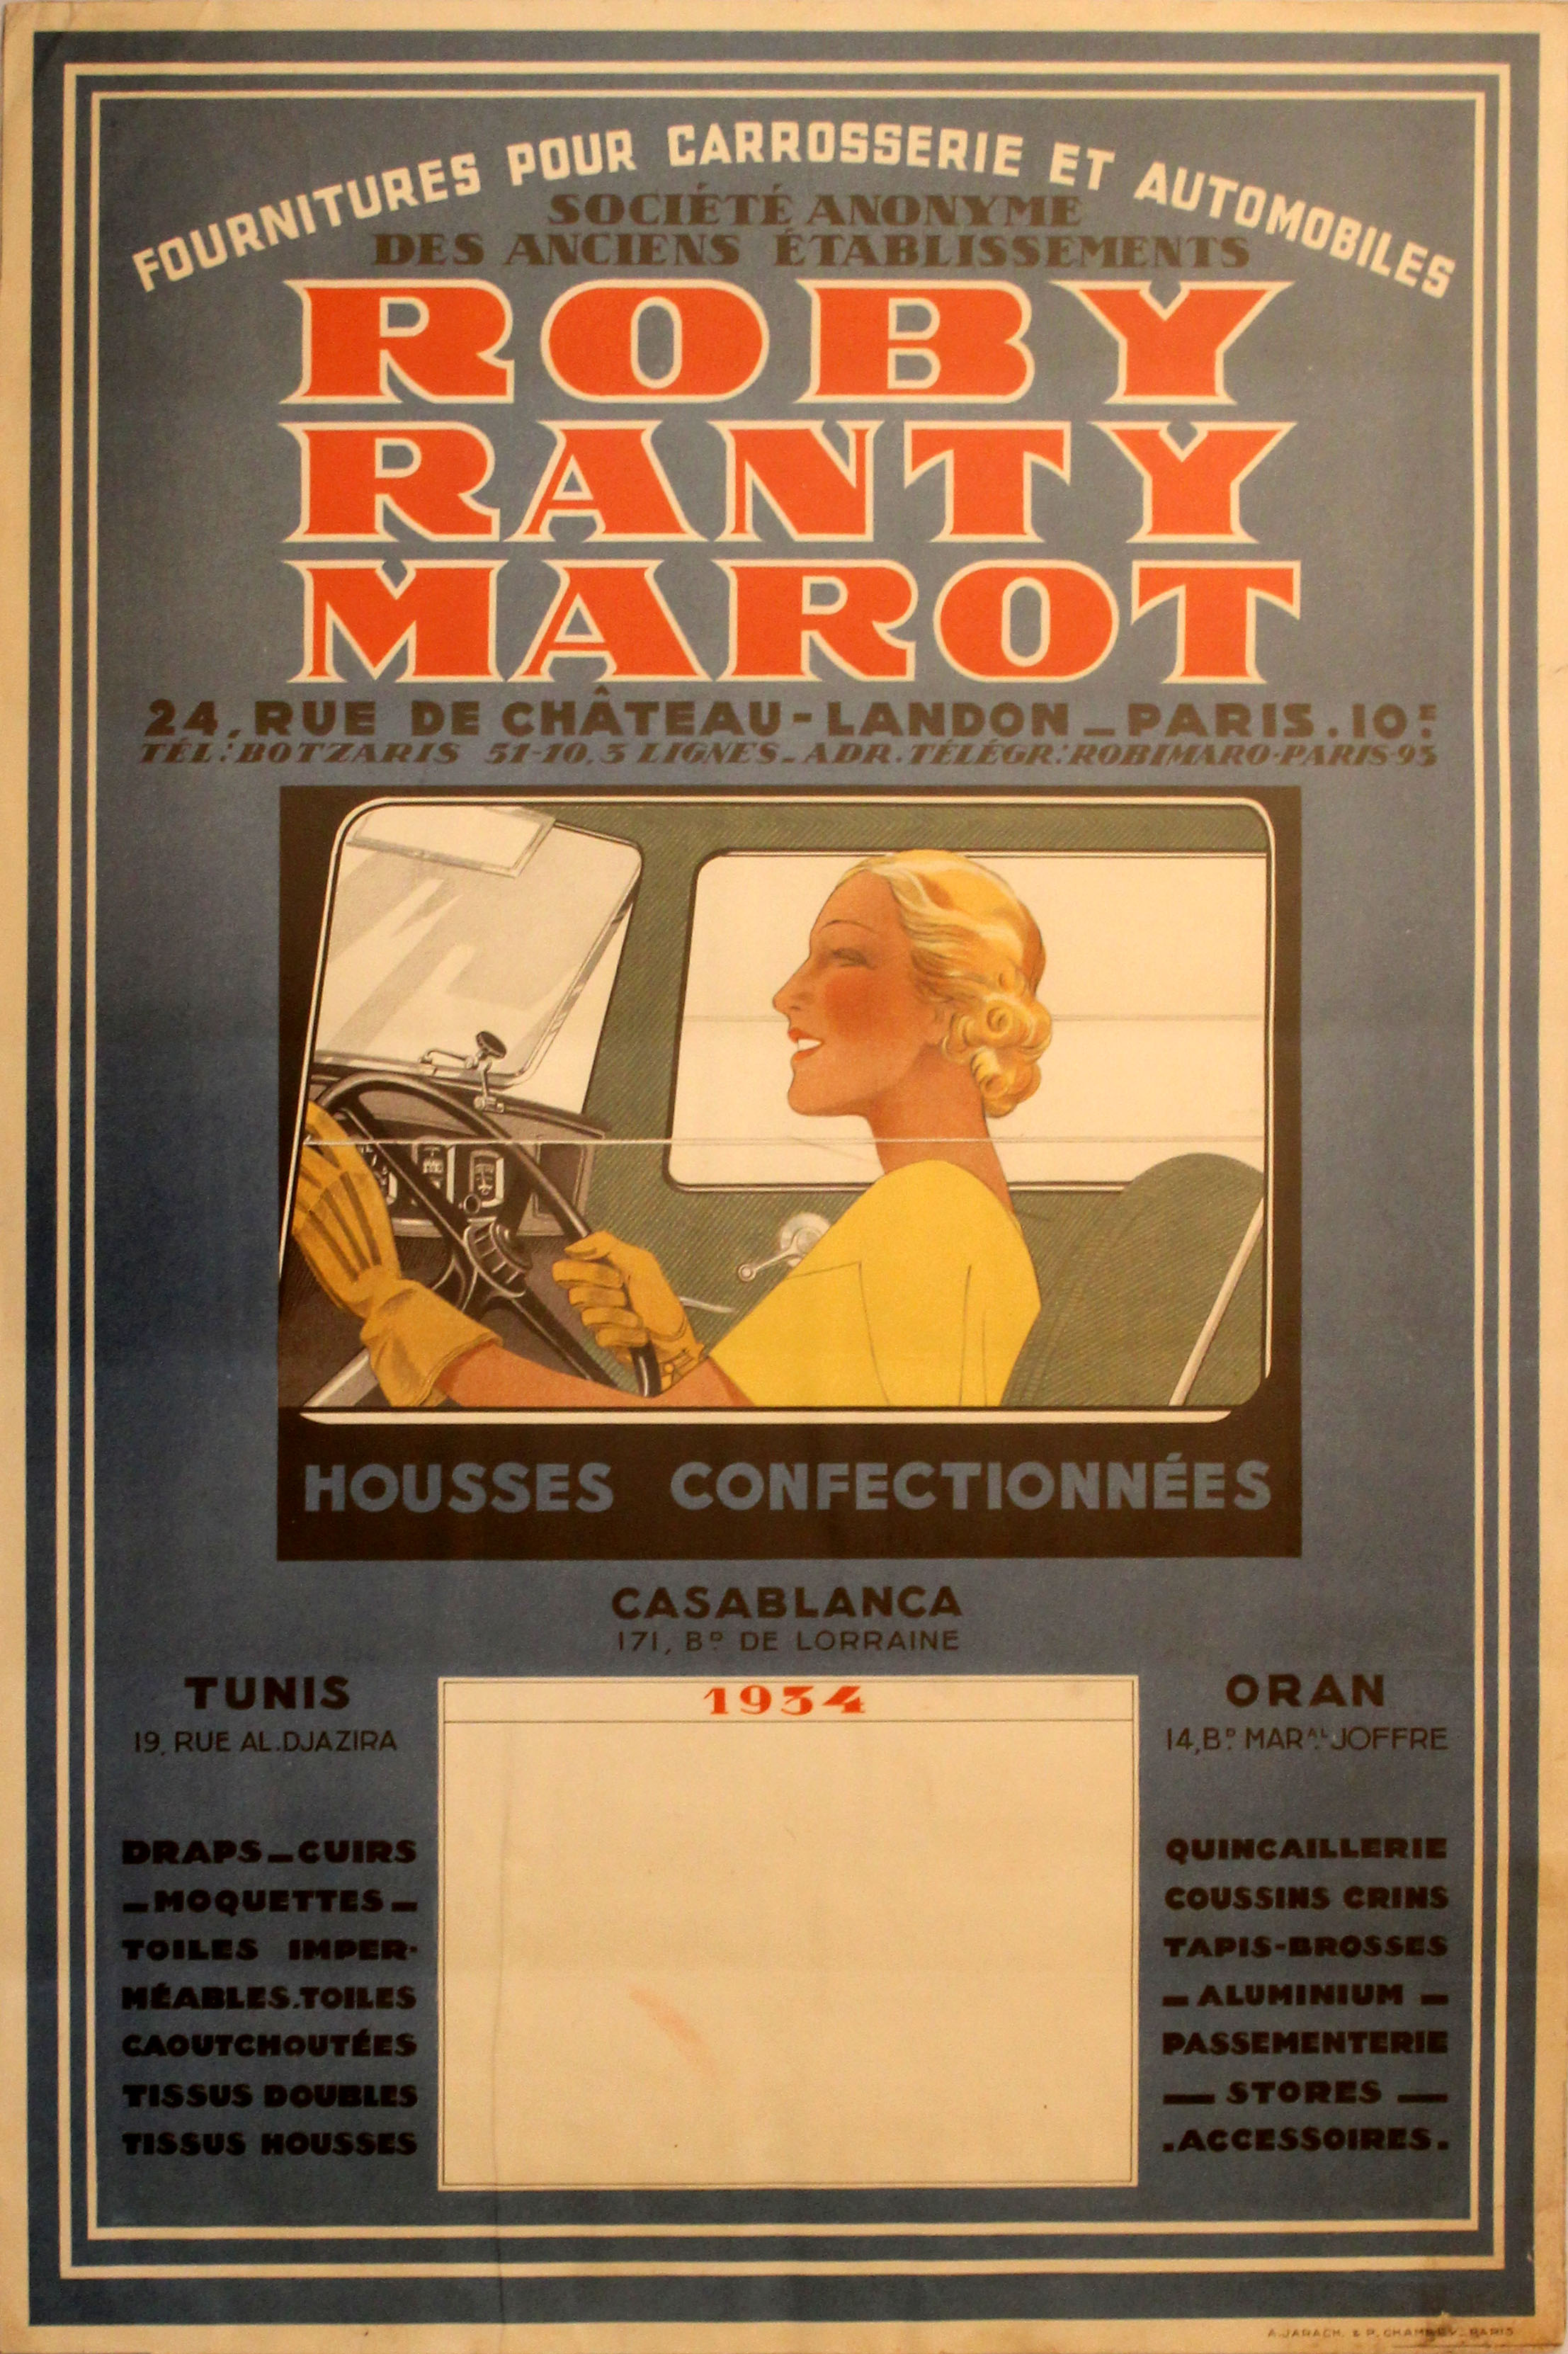 Lot 1302 - Roby Ranty Marot Automotive Supplies